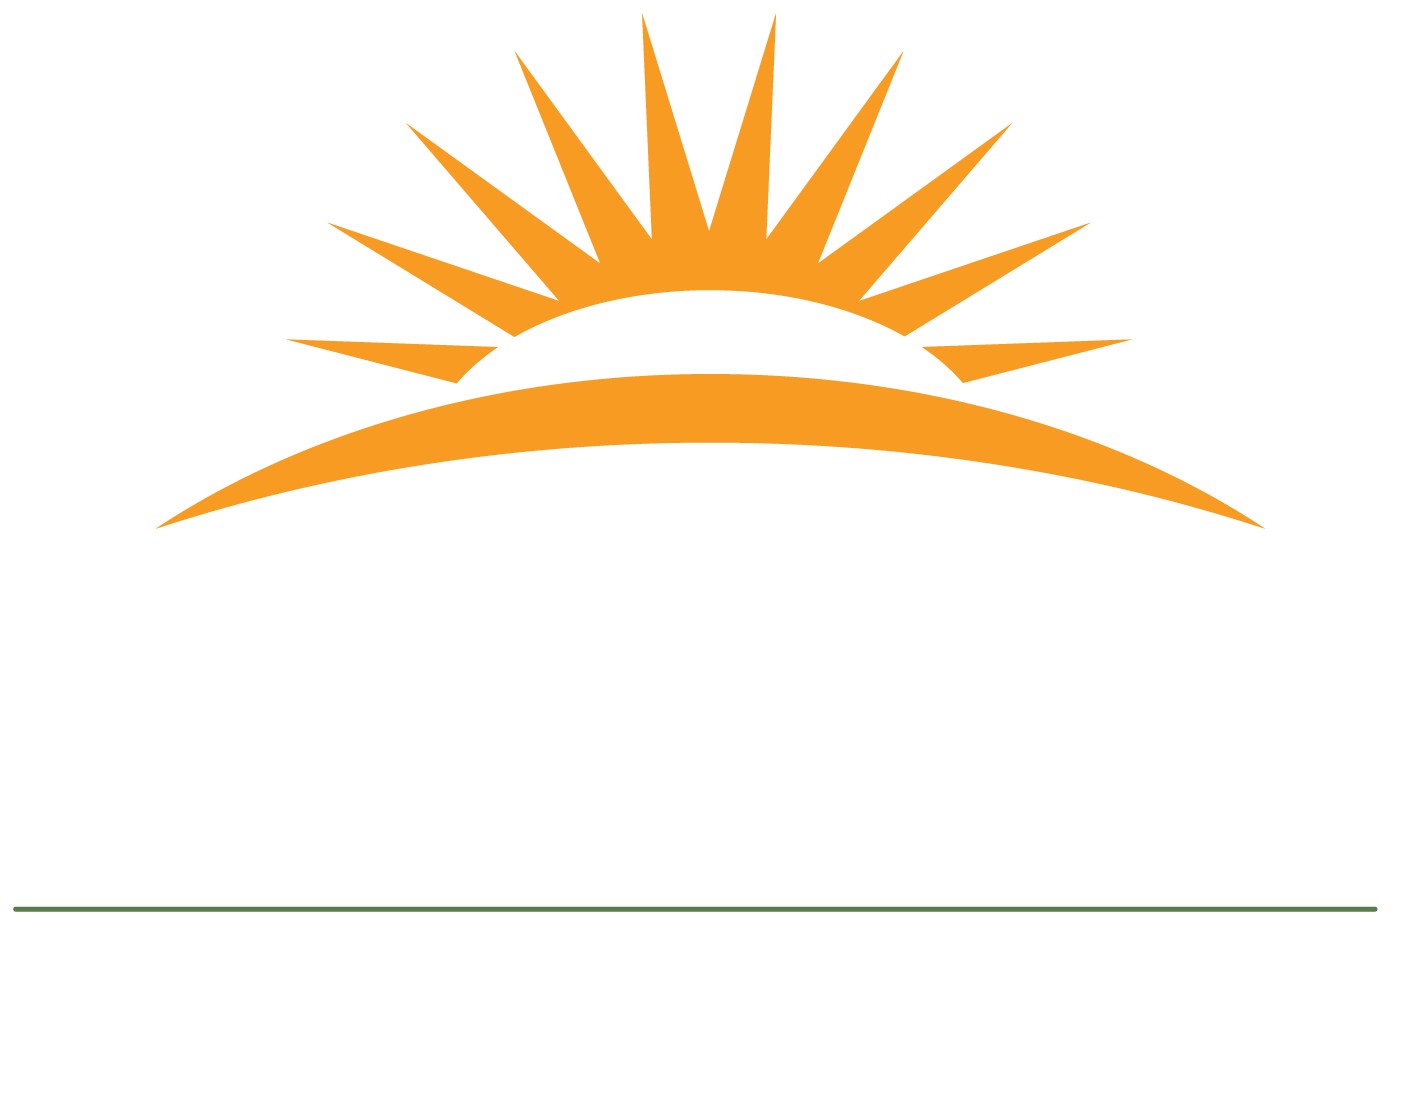 Health & Wellness Center | SF City Impact